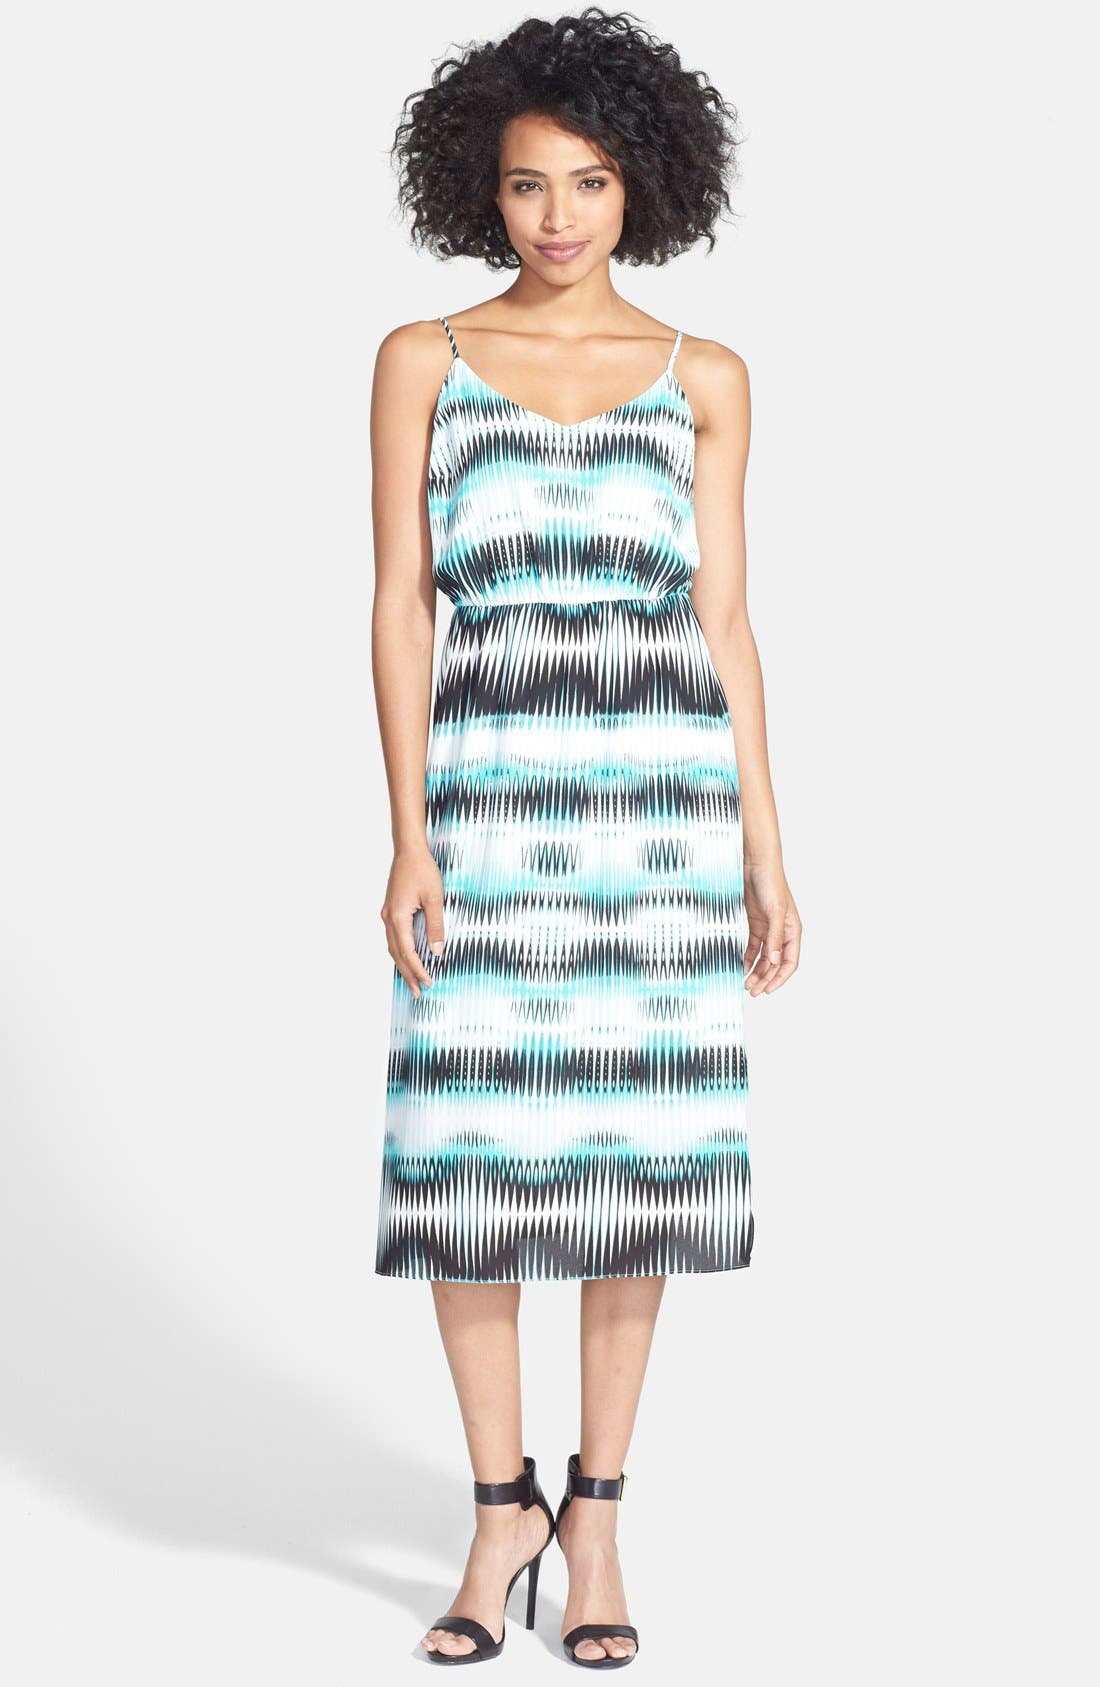 Main Image - Vince Camuto 'Linear Echoes' Print Midi Dress